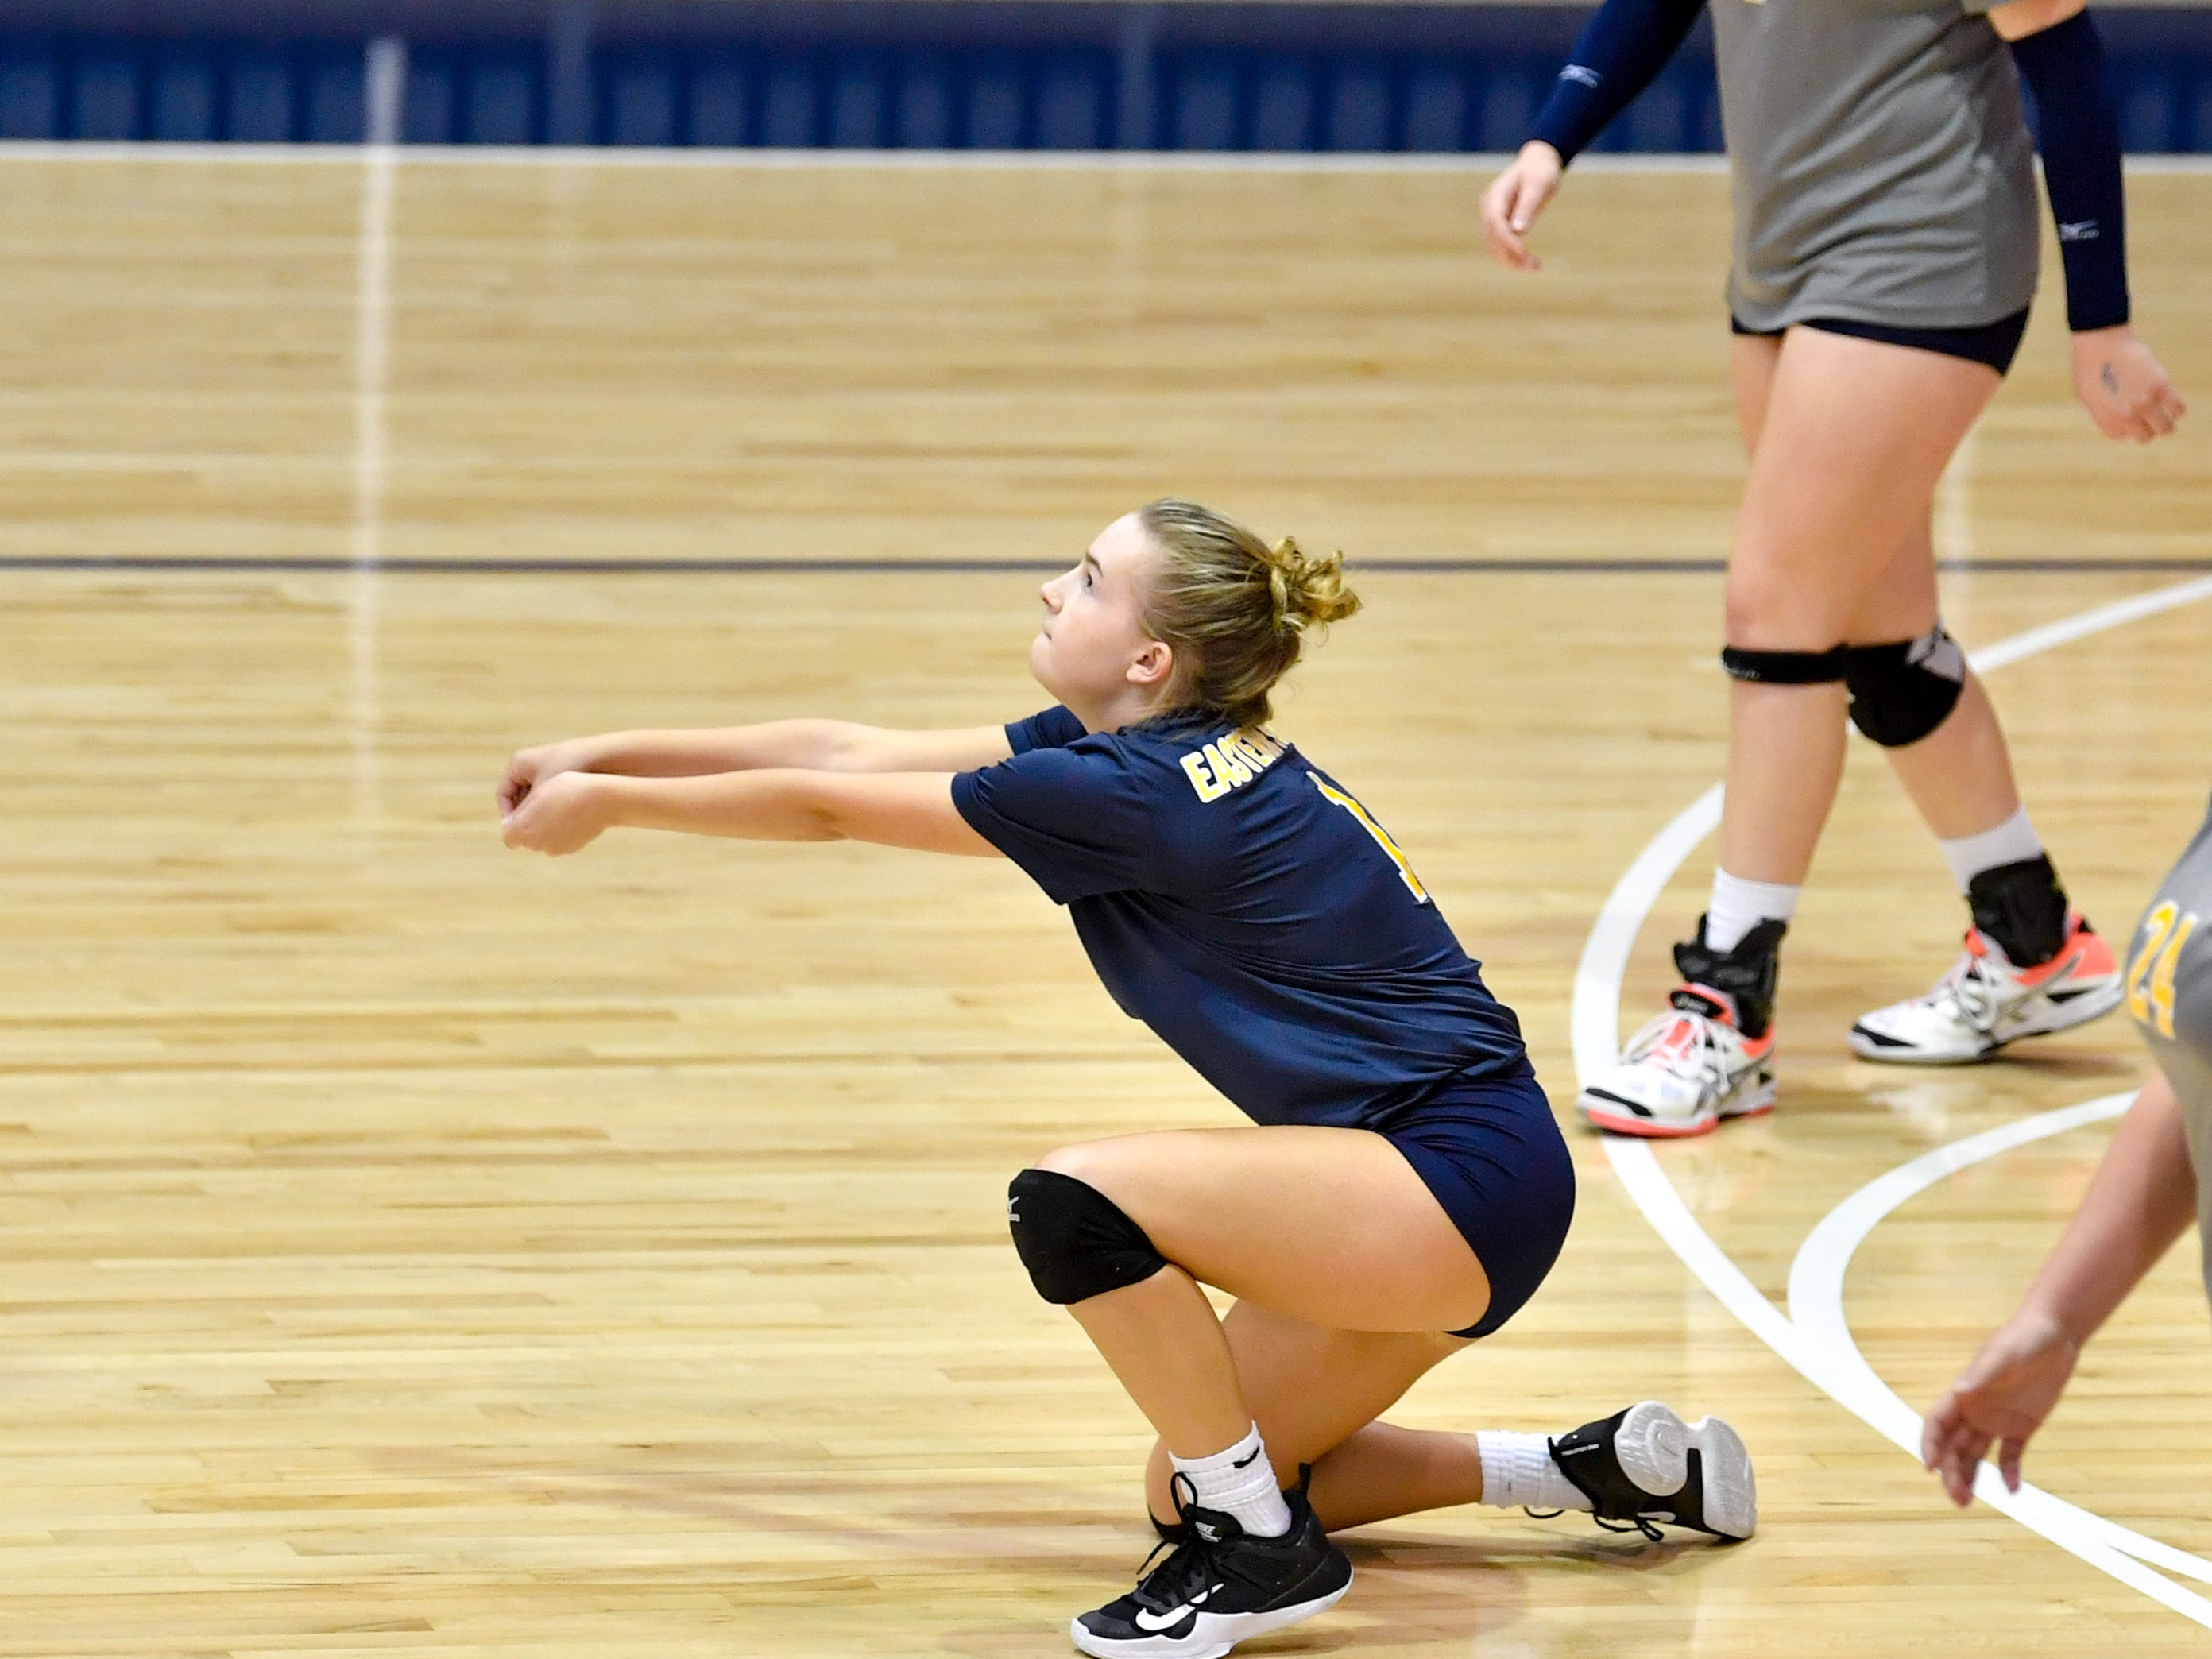 Olivia Koicuba (1) bumps the ball during the YAIAA league volleyball tournament semifinals between Eastern York and Delone Catholic, Tuesday, October 23, 2018. The Squirettes defeated the Golden Knights 3-2.